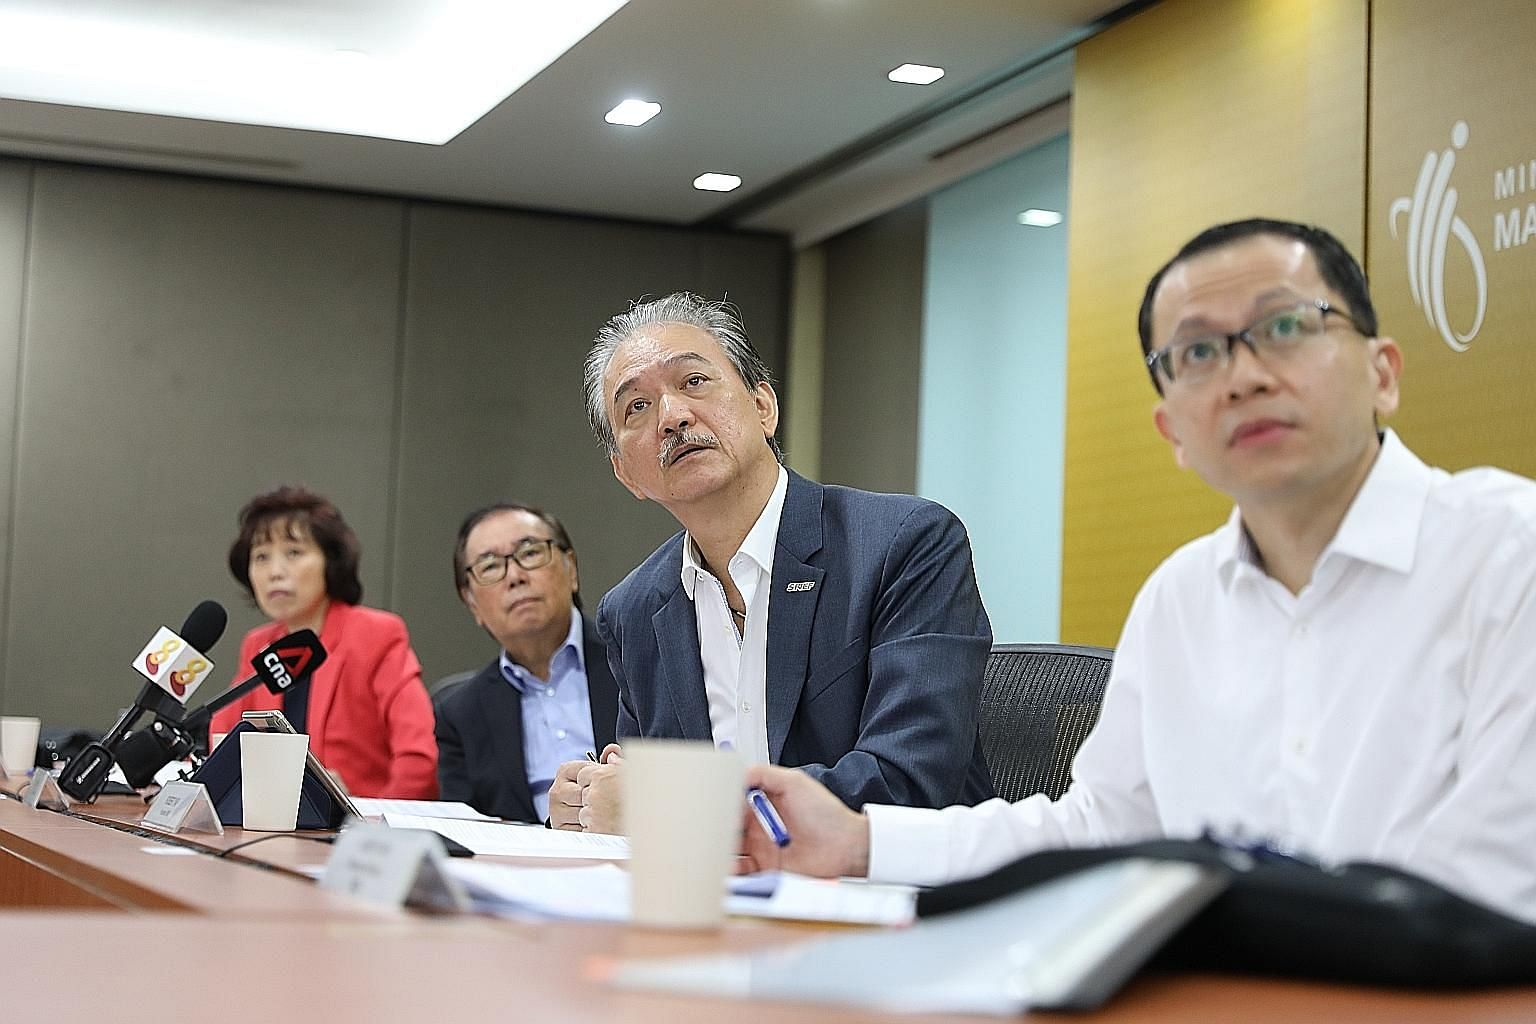 From left: National Trades Union Congress president Mary Liew, National Wages Council chairman Peter Seah, Singapore National Employers Federation president Robert Yap and Permanent Secretary for Manpower Aubeck Kam at yesterday's media conference. S